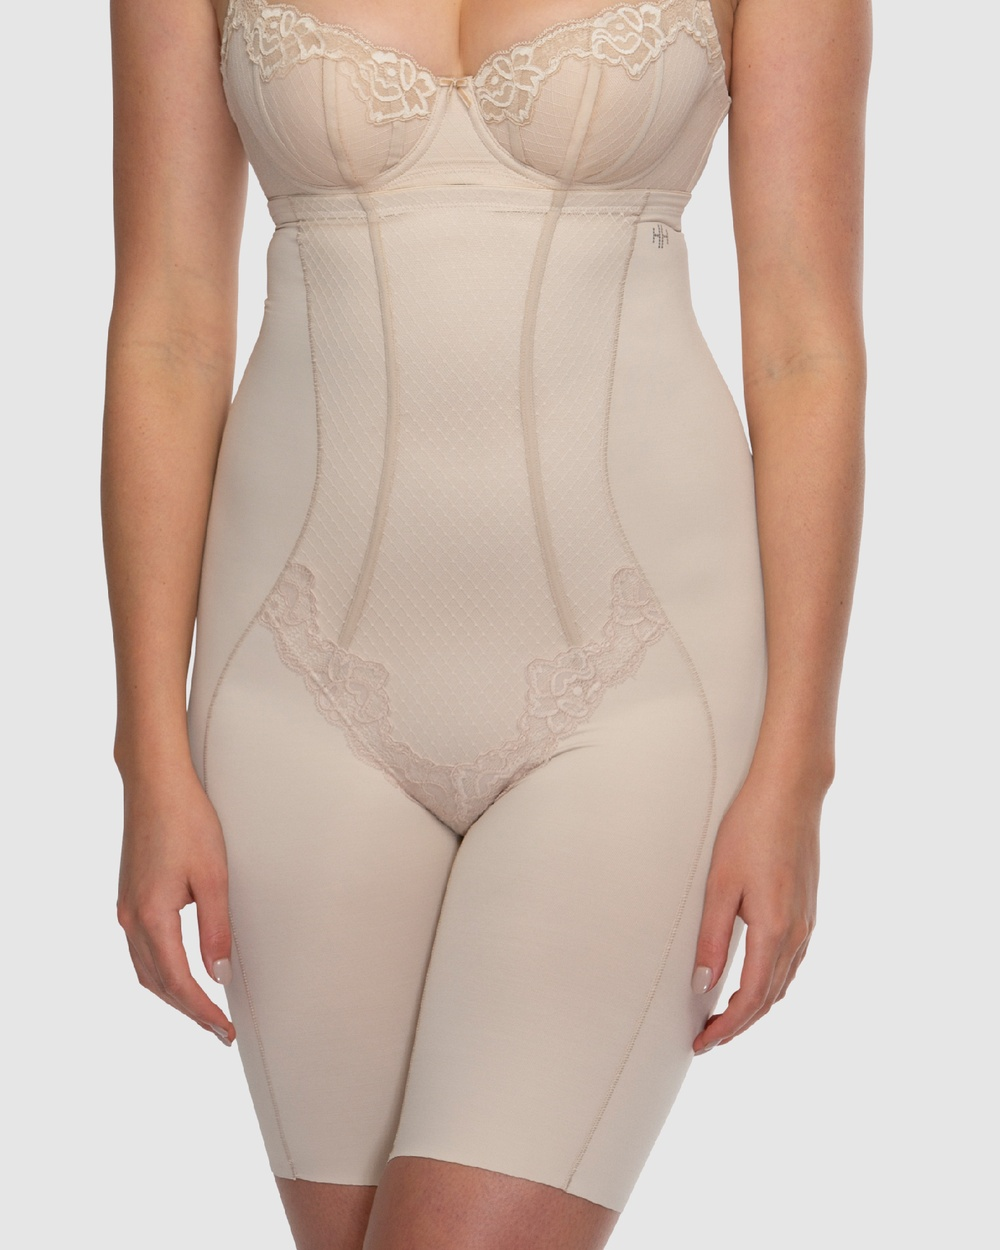 Hush Whisper Firm Control High Waist Thigh Shapers Lingerie Nude / Nude Australia